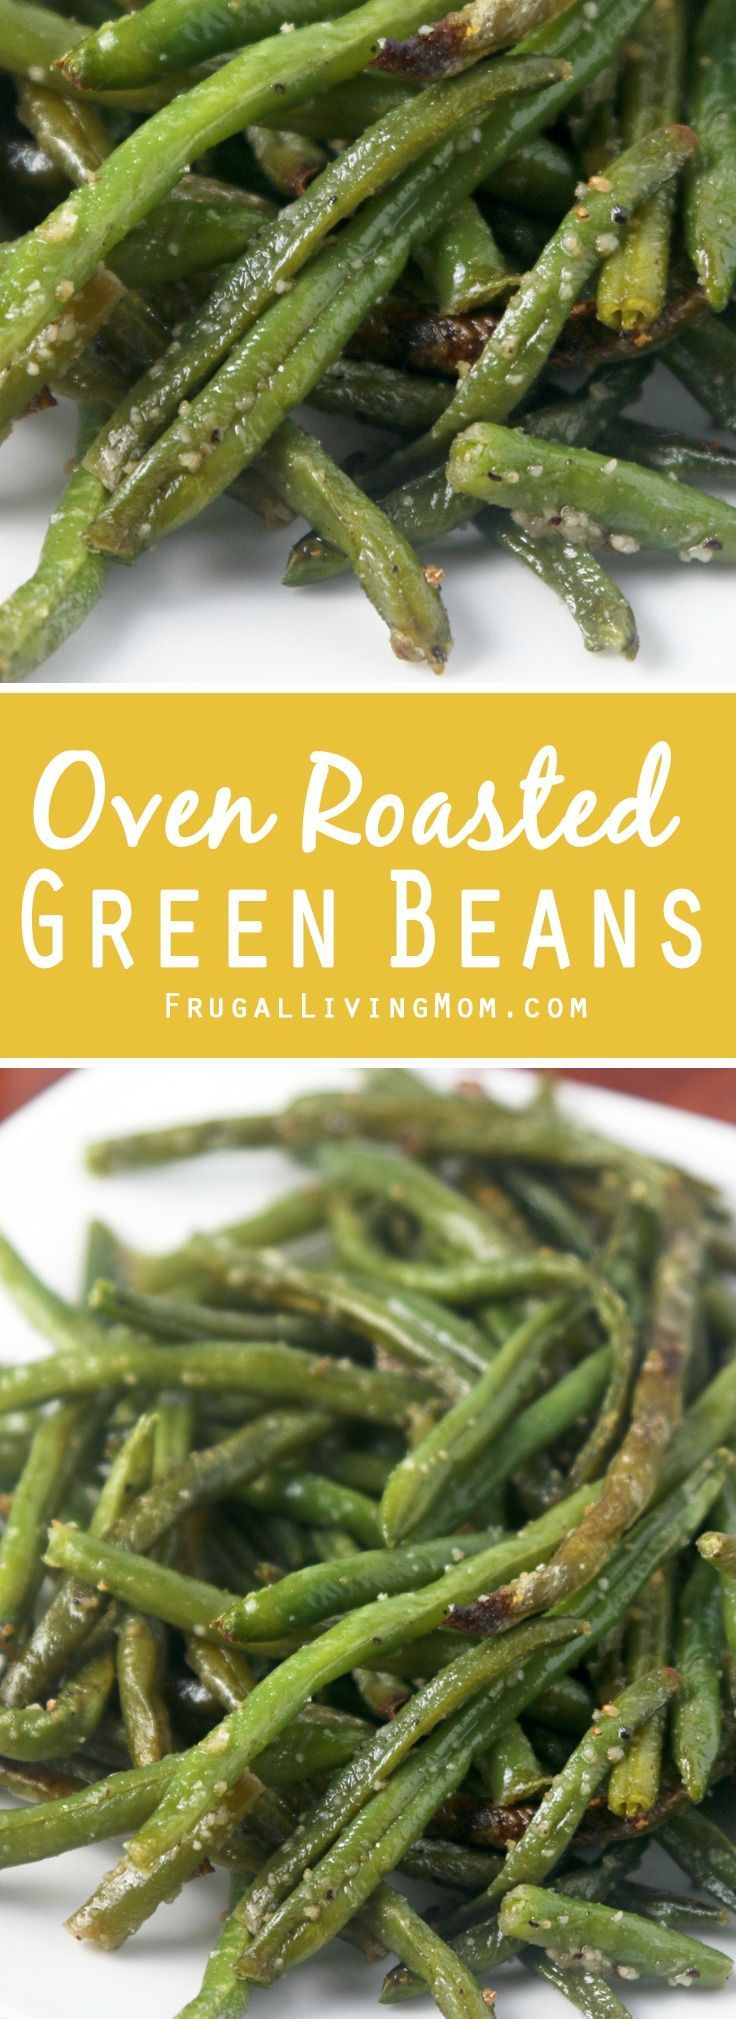 I am not a vegetable lover. That said, I do like to eat healthy. http://www.frugallivingmom.com/oven-roasted-green-beans I know eating lots of veggies is a part of that.  When I discovered roasting them I was amazed at how it changed the taste from simply being steamed or sauteed.  Roasting Green Beans imparts a yummy slightly sweet and smokey taste that makes them pretty amazing.